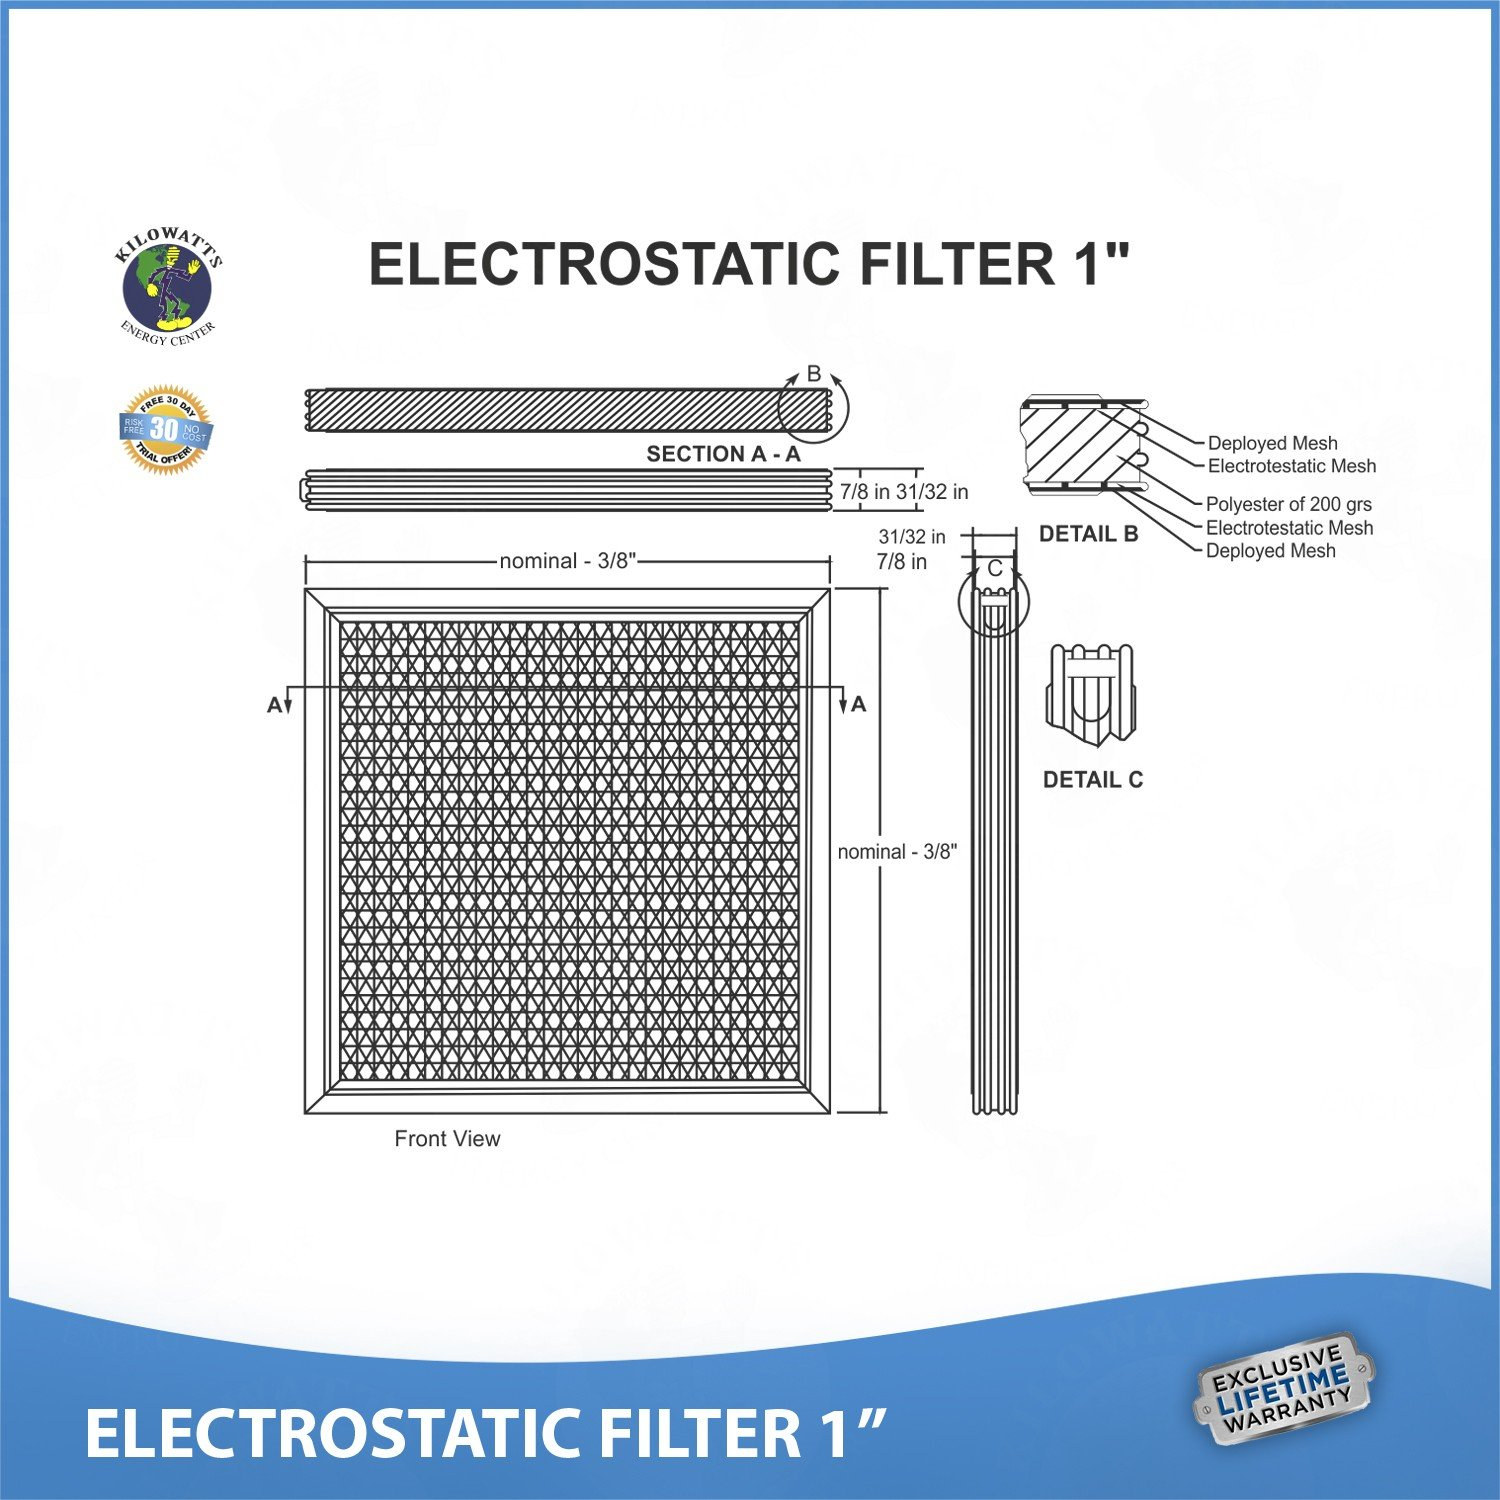 20x25x1 Lifetime Air Filter - Electrostatic Washable Permanent A/C Furnace Air Filter. by Kilowatts Energy Center (Image #6)